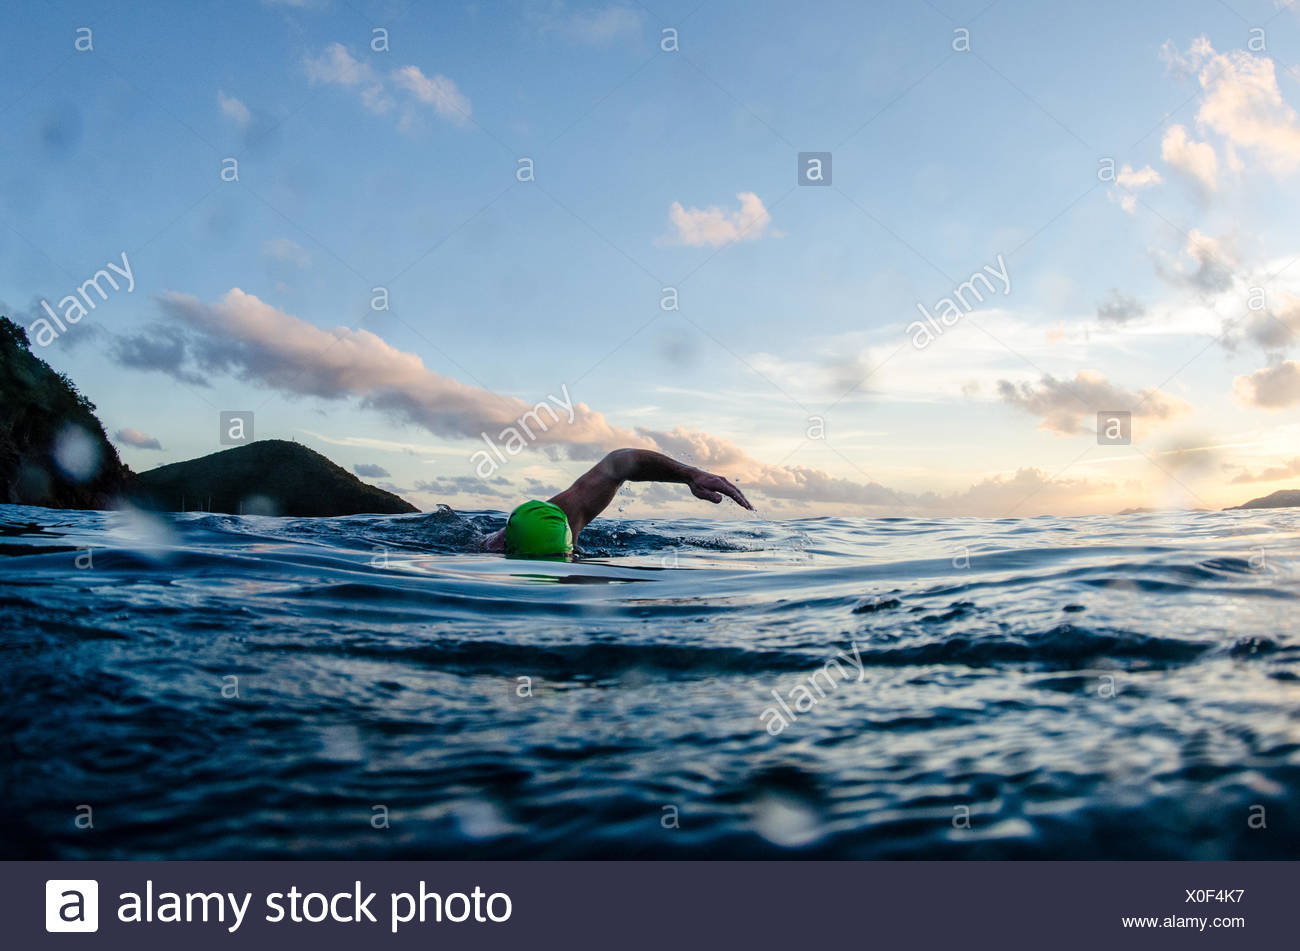 A man in a green swim cap swims at dusk, his arm is in mid stroke. - Stock Image